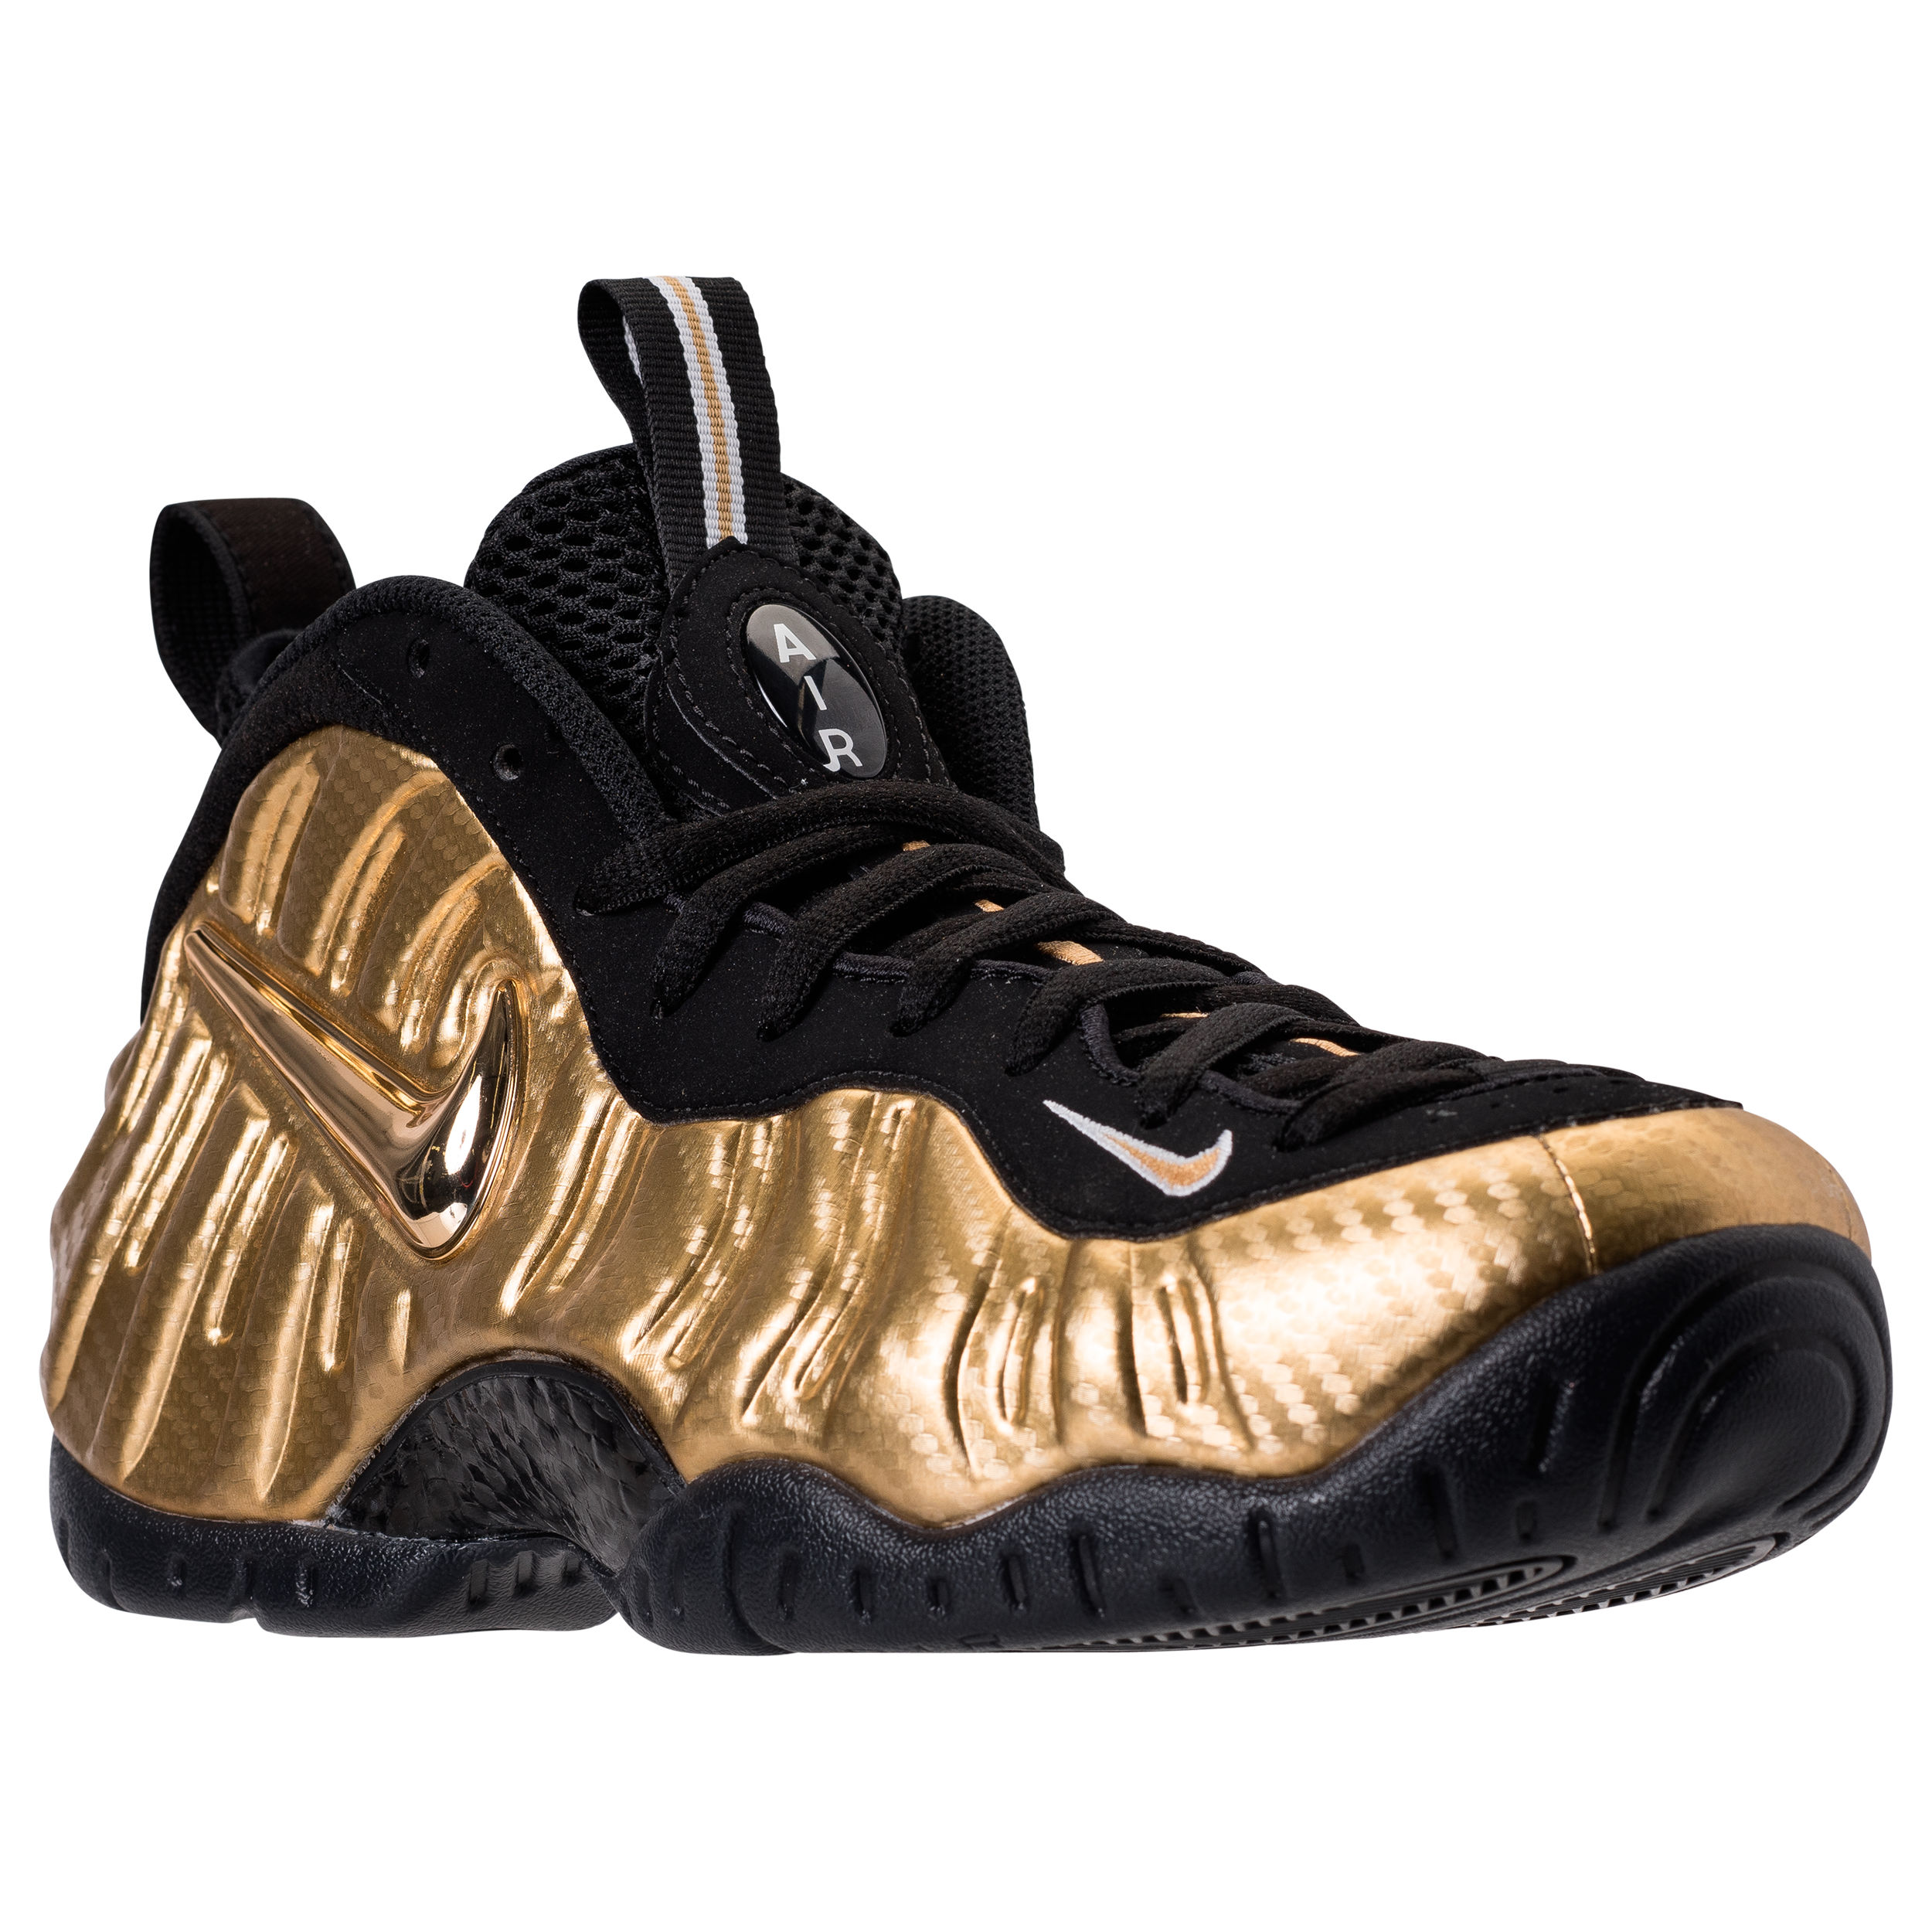 huge discount 1685b 95c6f Detailed Look at the Air Foamposite Pro 'Metallic Gold ...